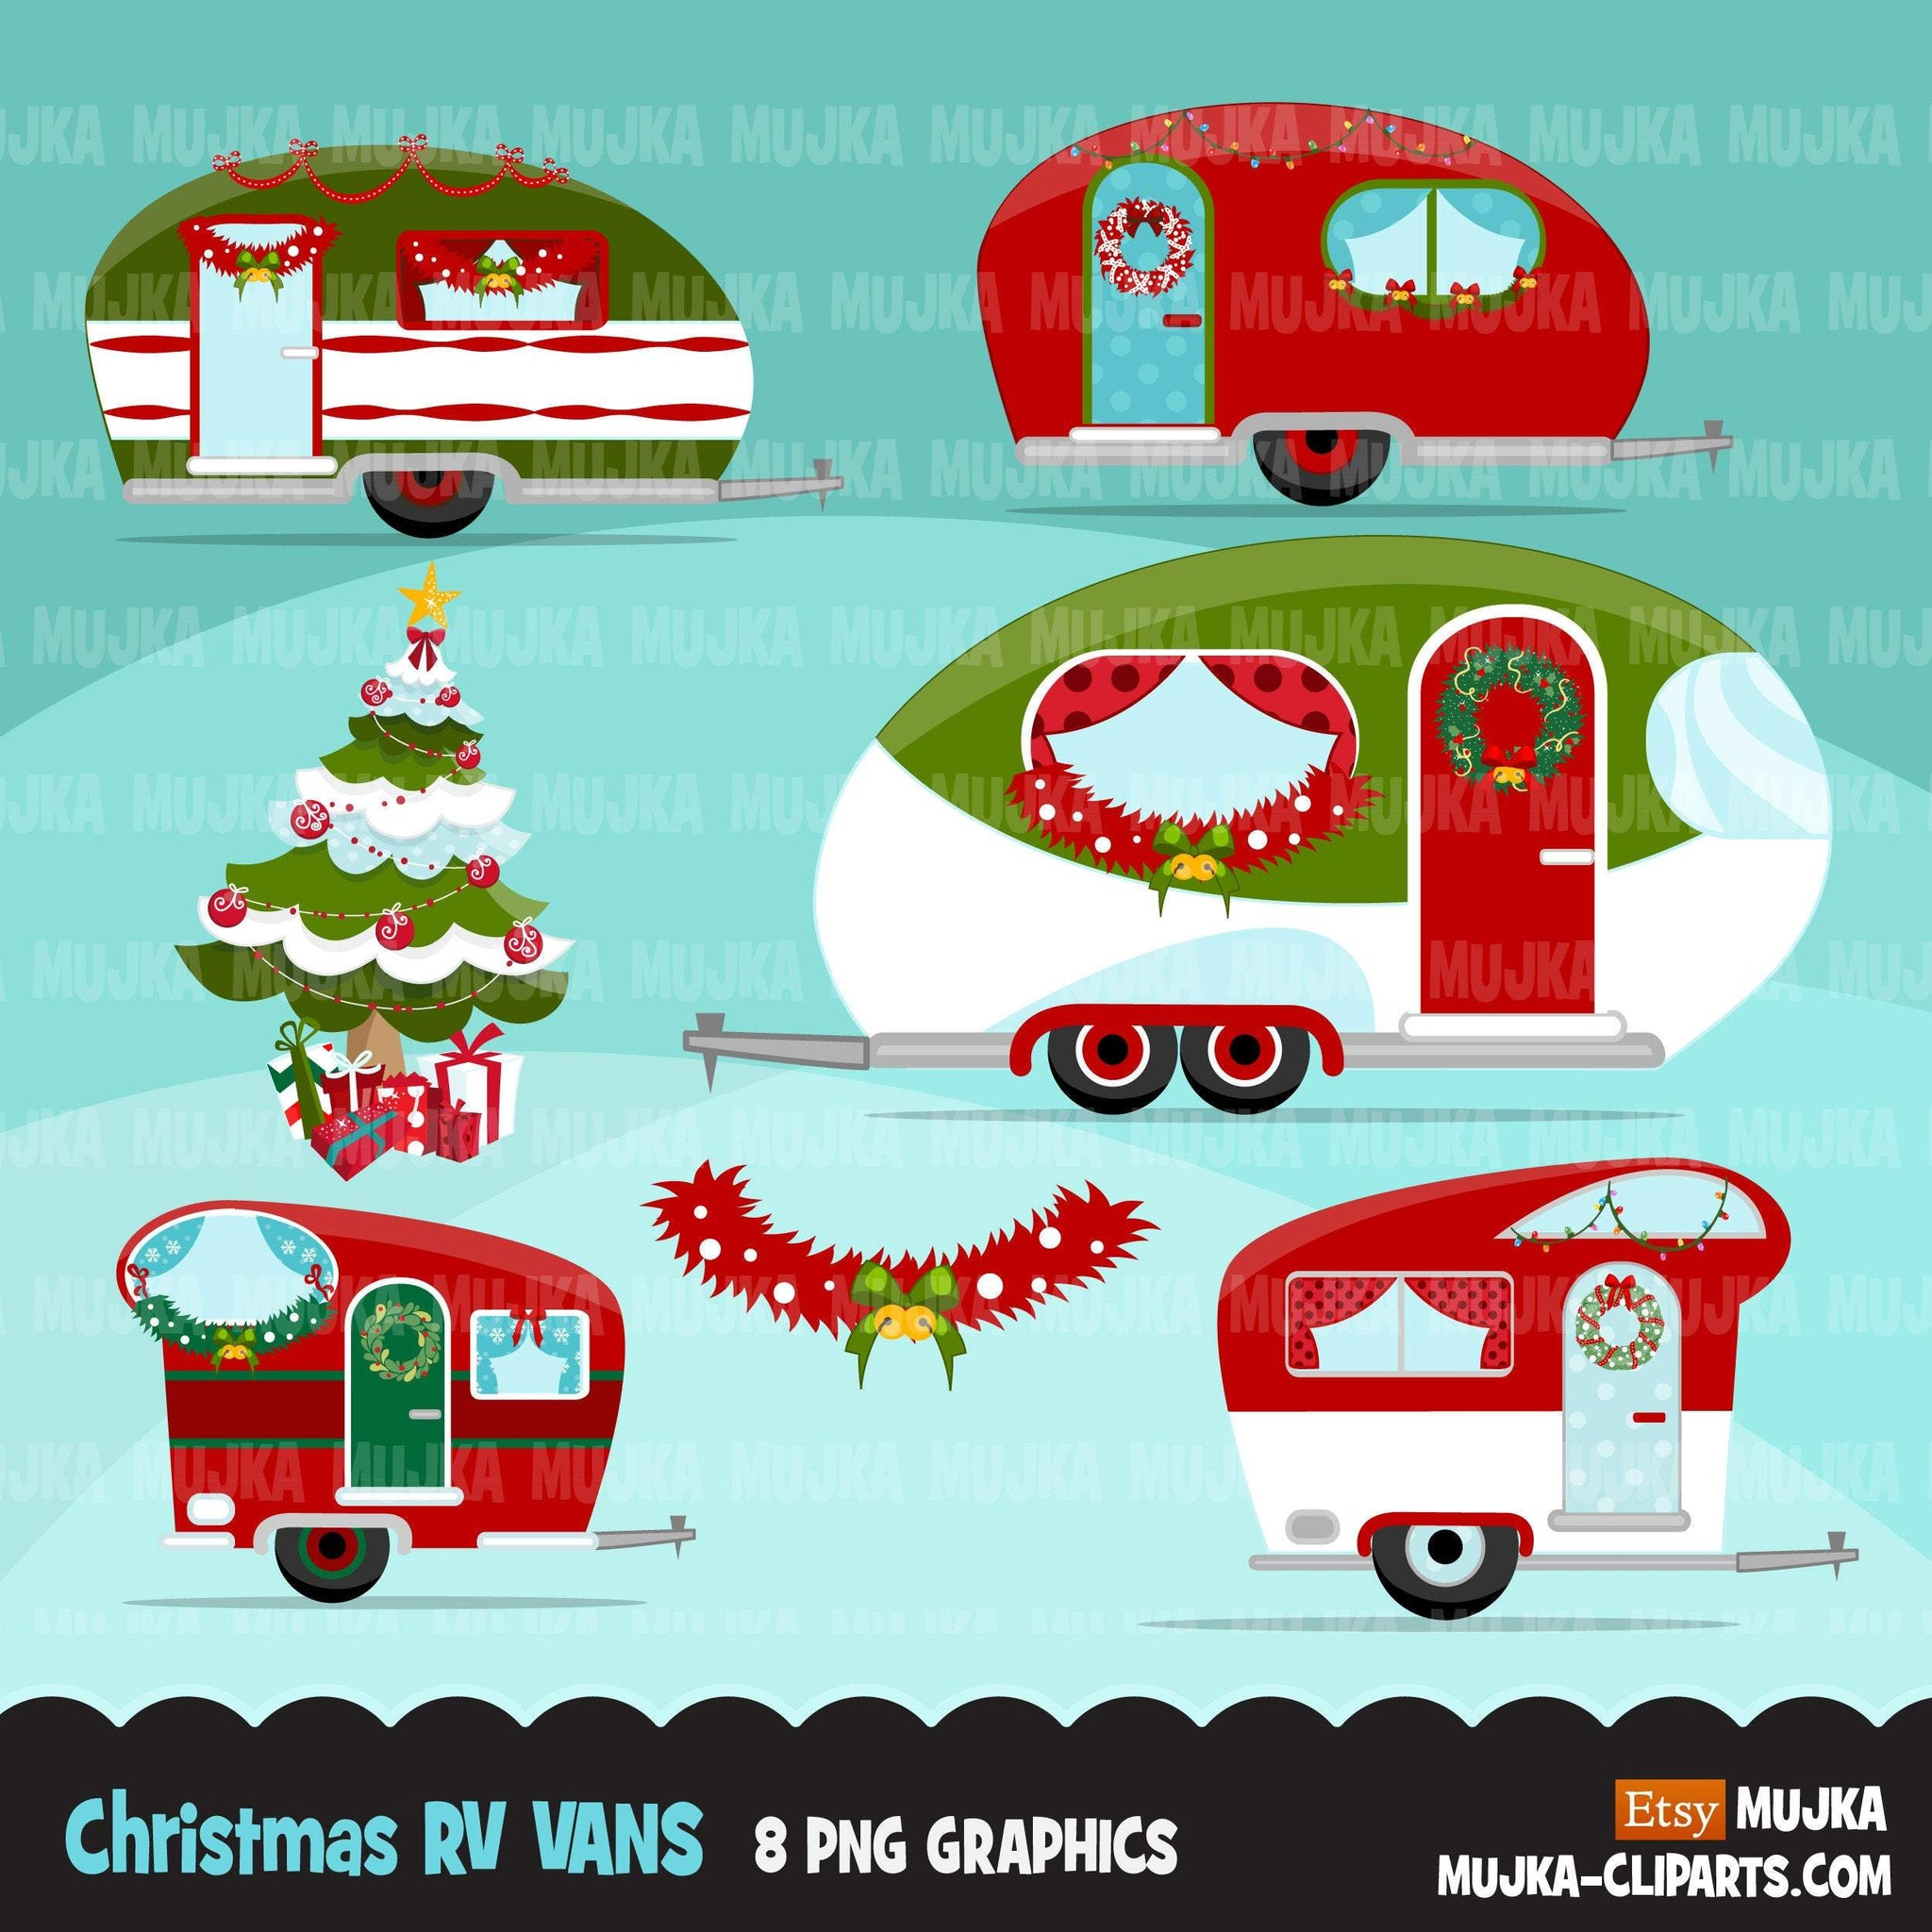 Christmas RV Vans clipart, decorated Noel camper van graphics